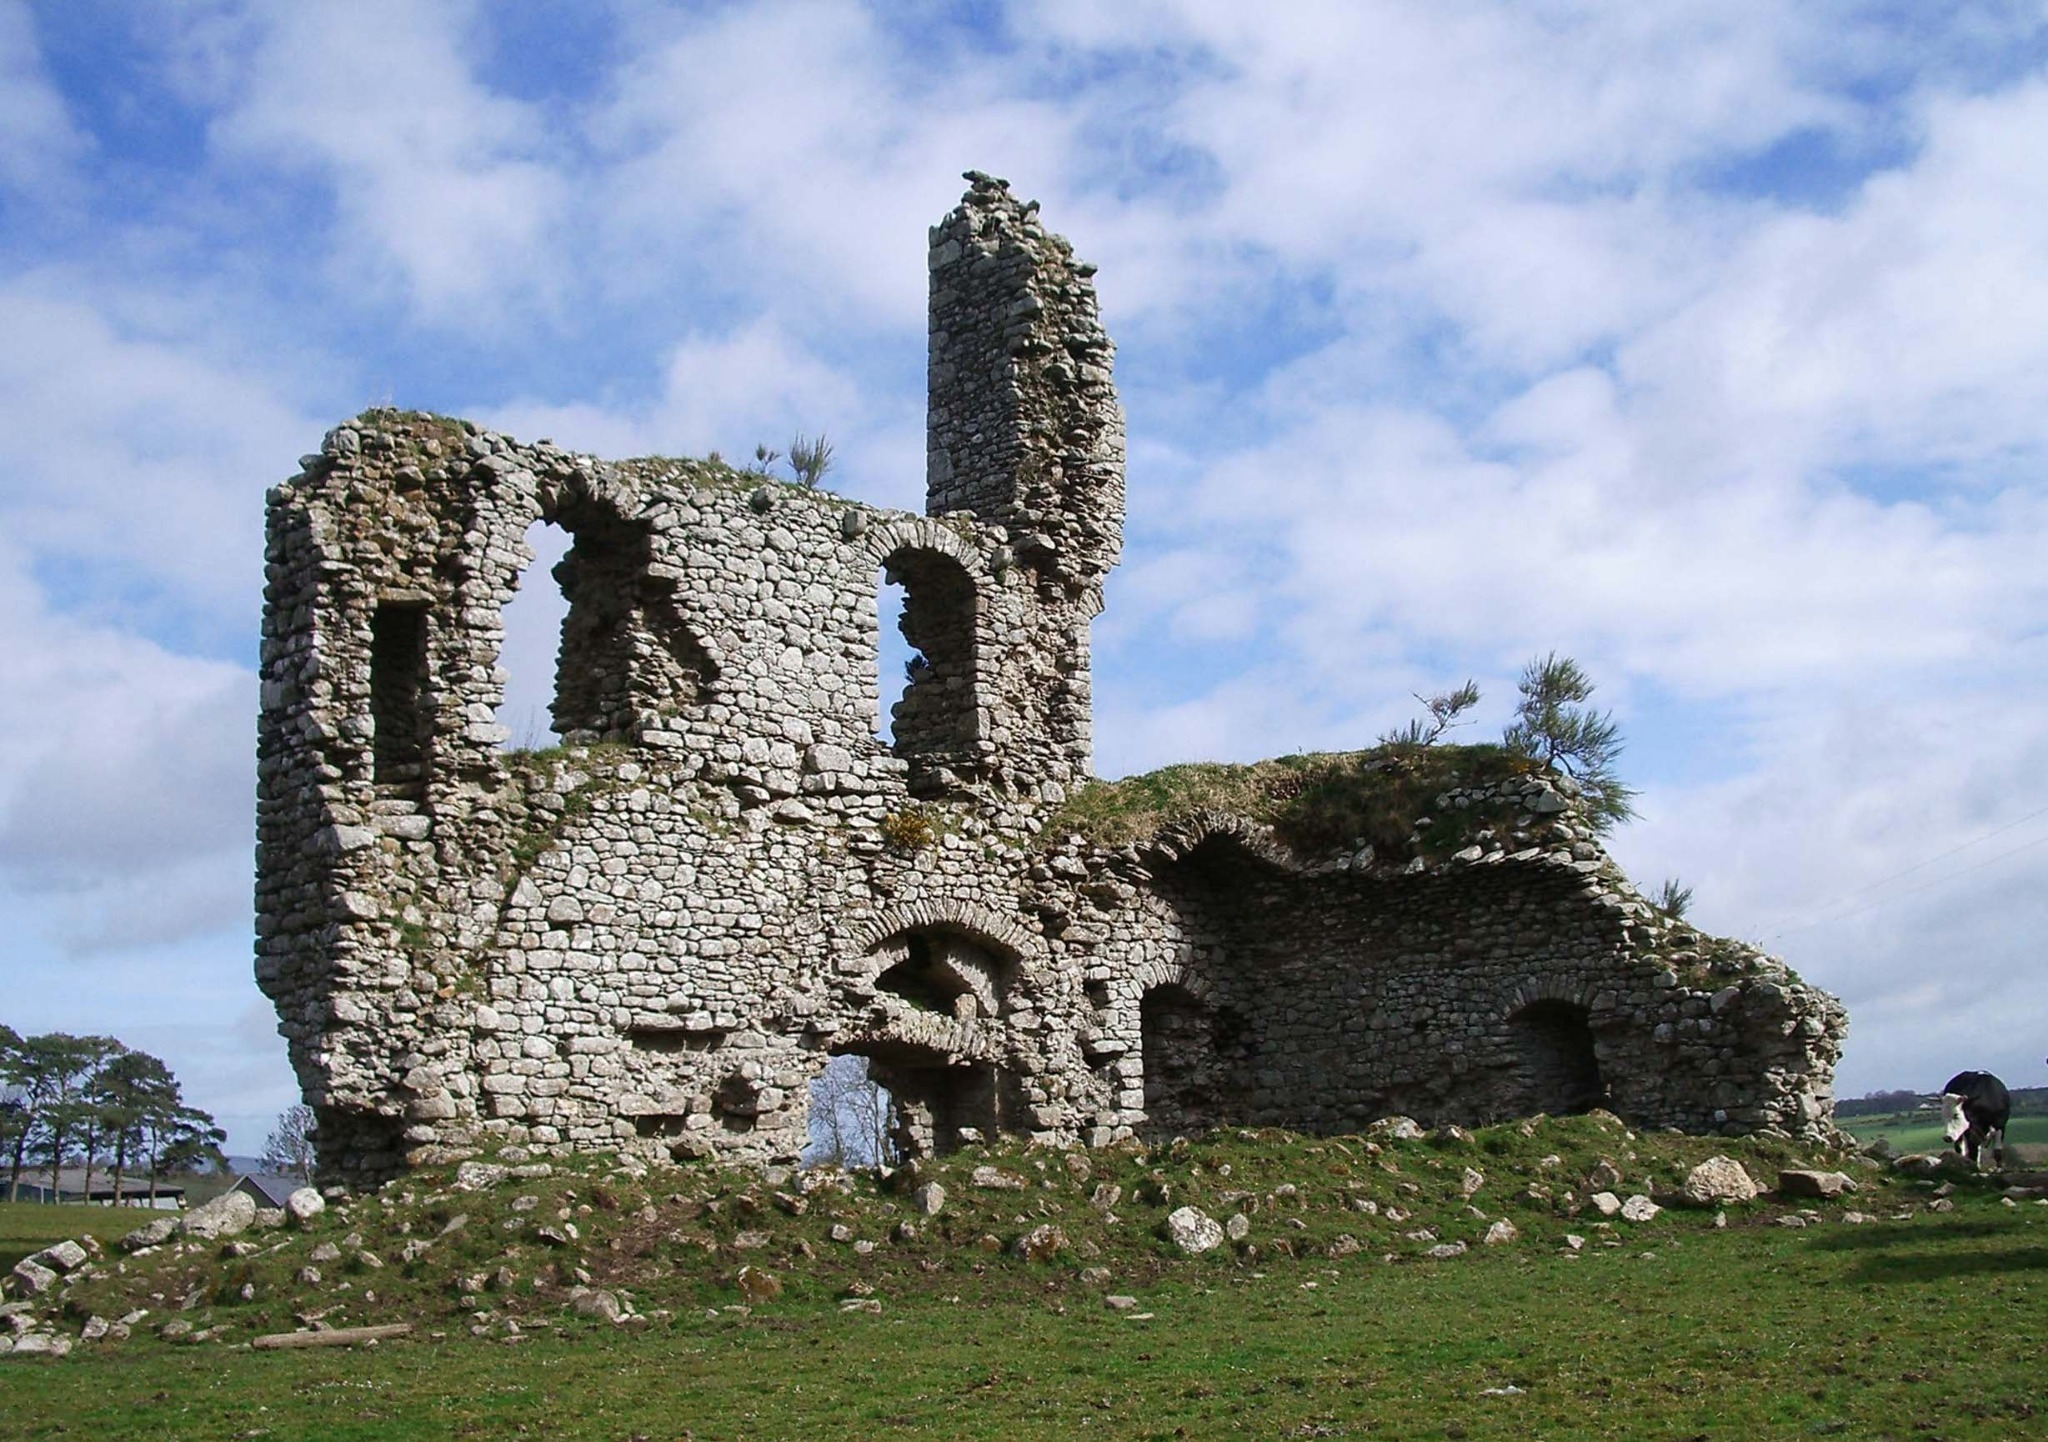 https://s3.amazonaws.com/photos.geni.com/p13/49/ea/61/c7/5344483e927f9b6b/rathnageeragh-castle-co-carlow_original.jpg